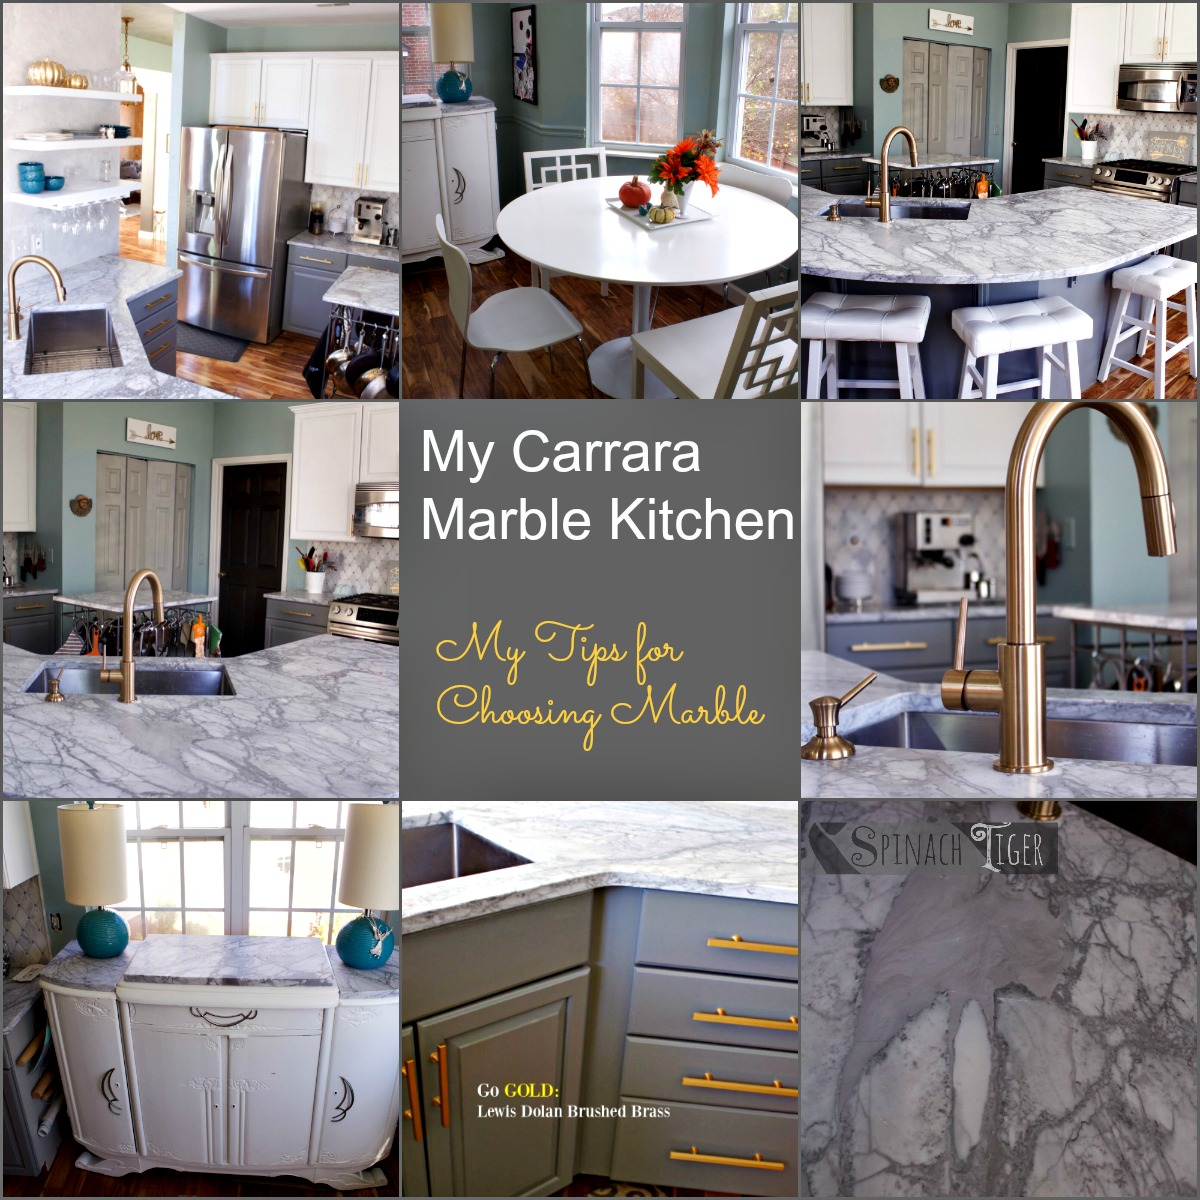 My Carrara Marble